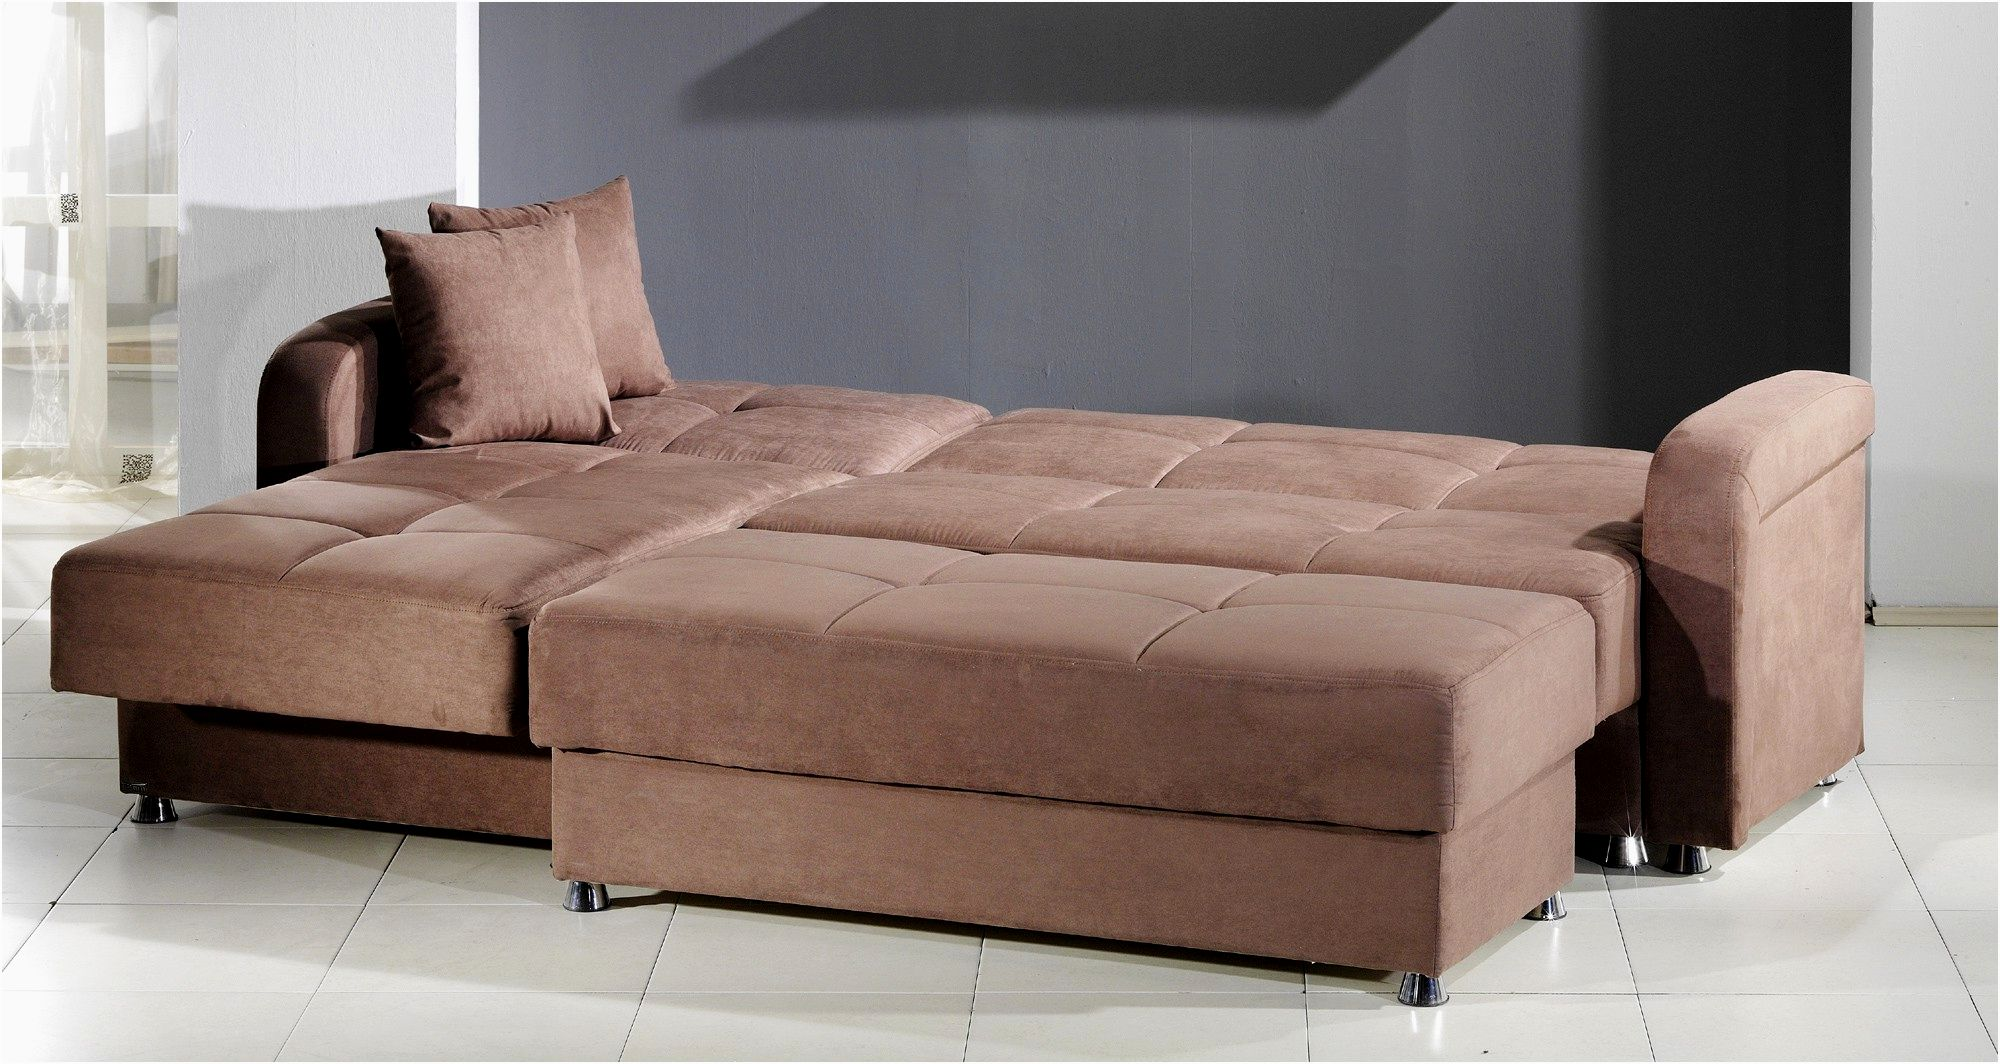 Beautiful Ikea Manstad Sofa Bed Image Modern Sofa Design